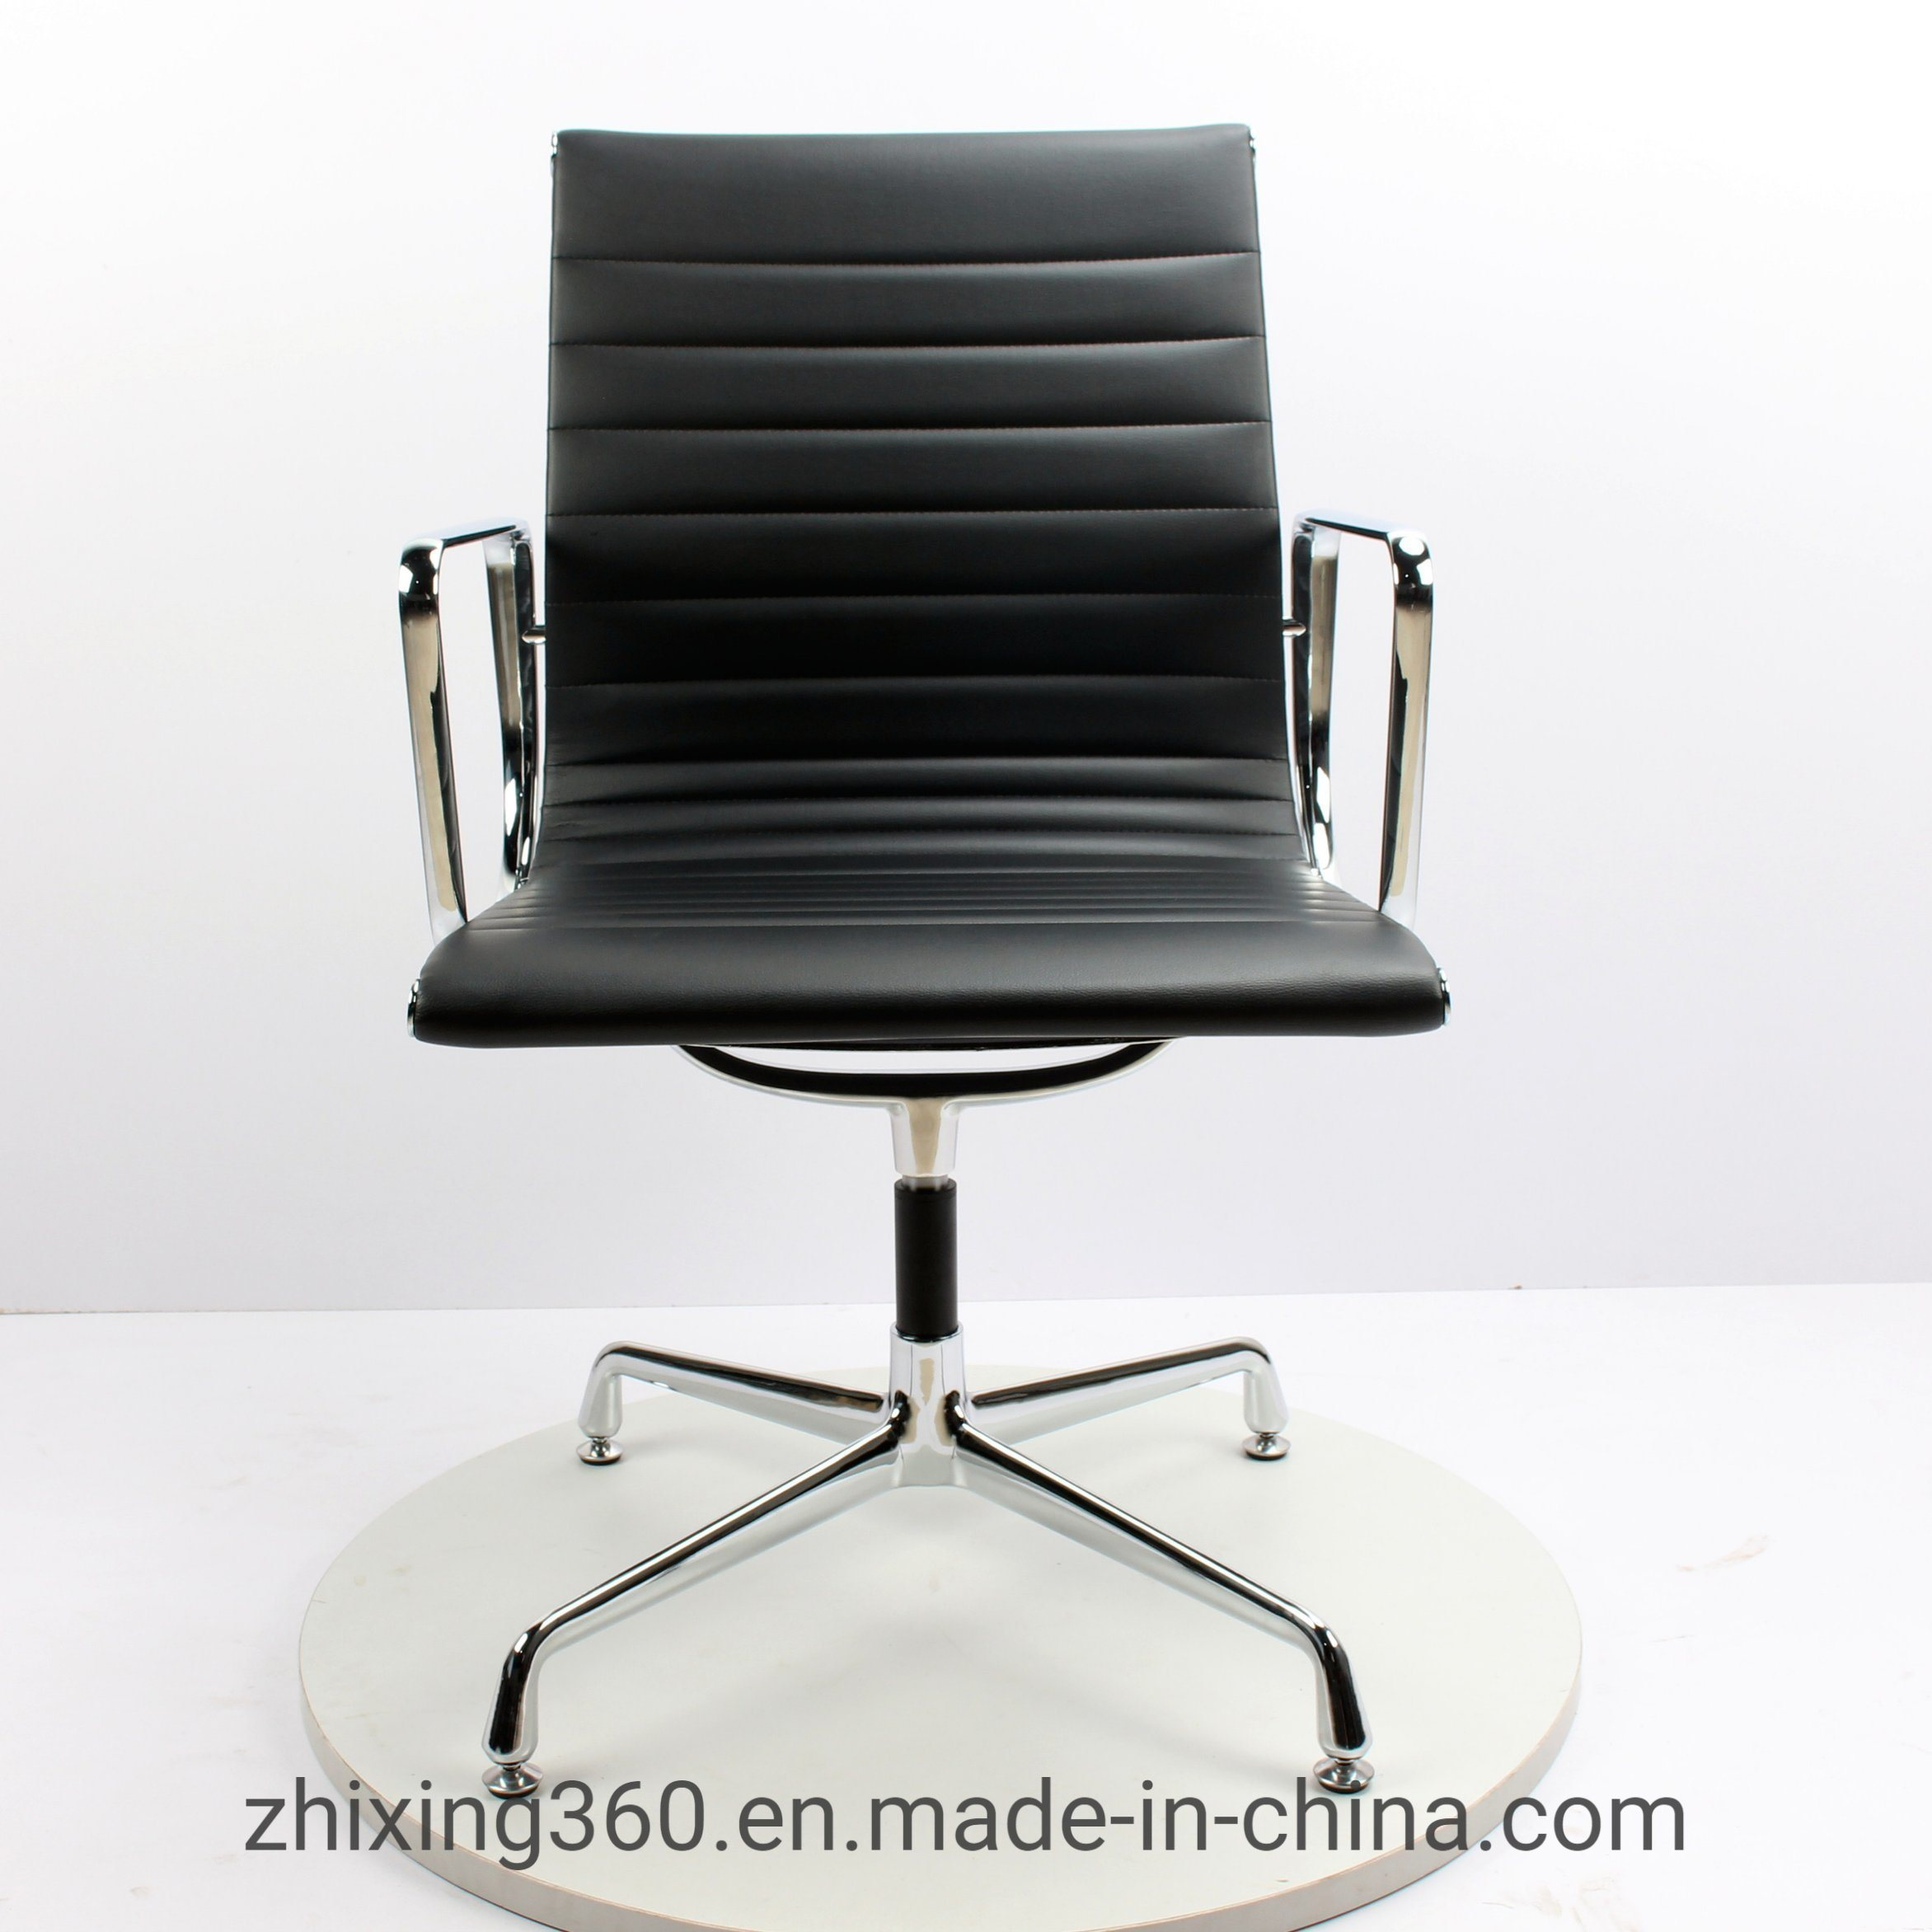 Modern Leather Chairs Hot Item Eames Modern Leather Office Chair Manager Chair Office Chair